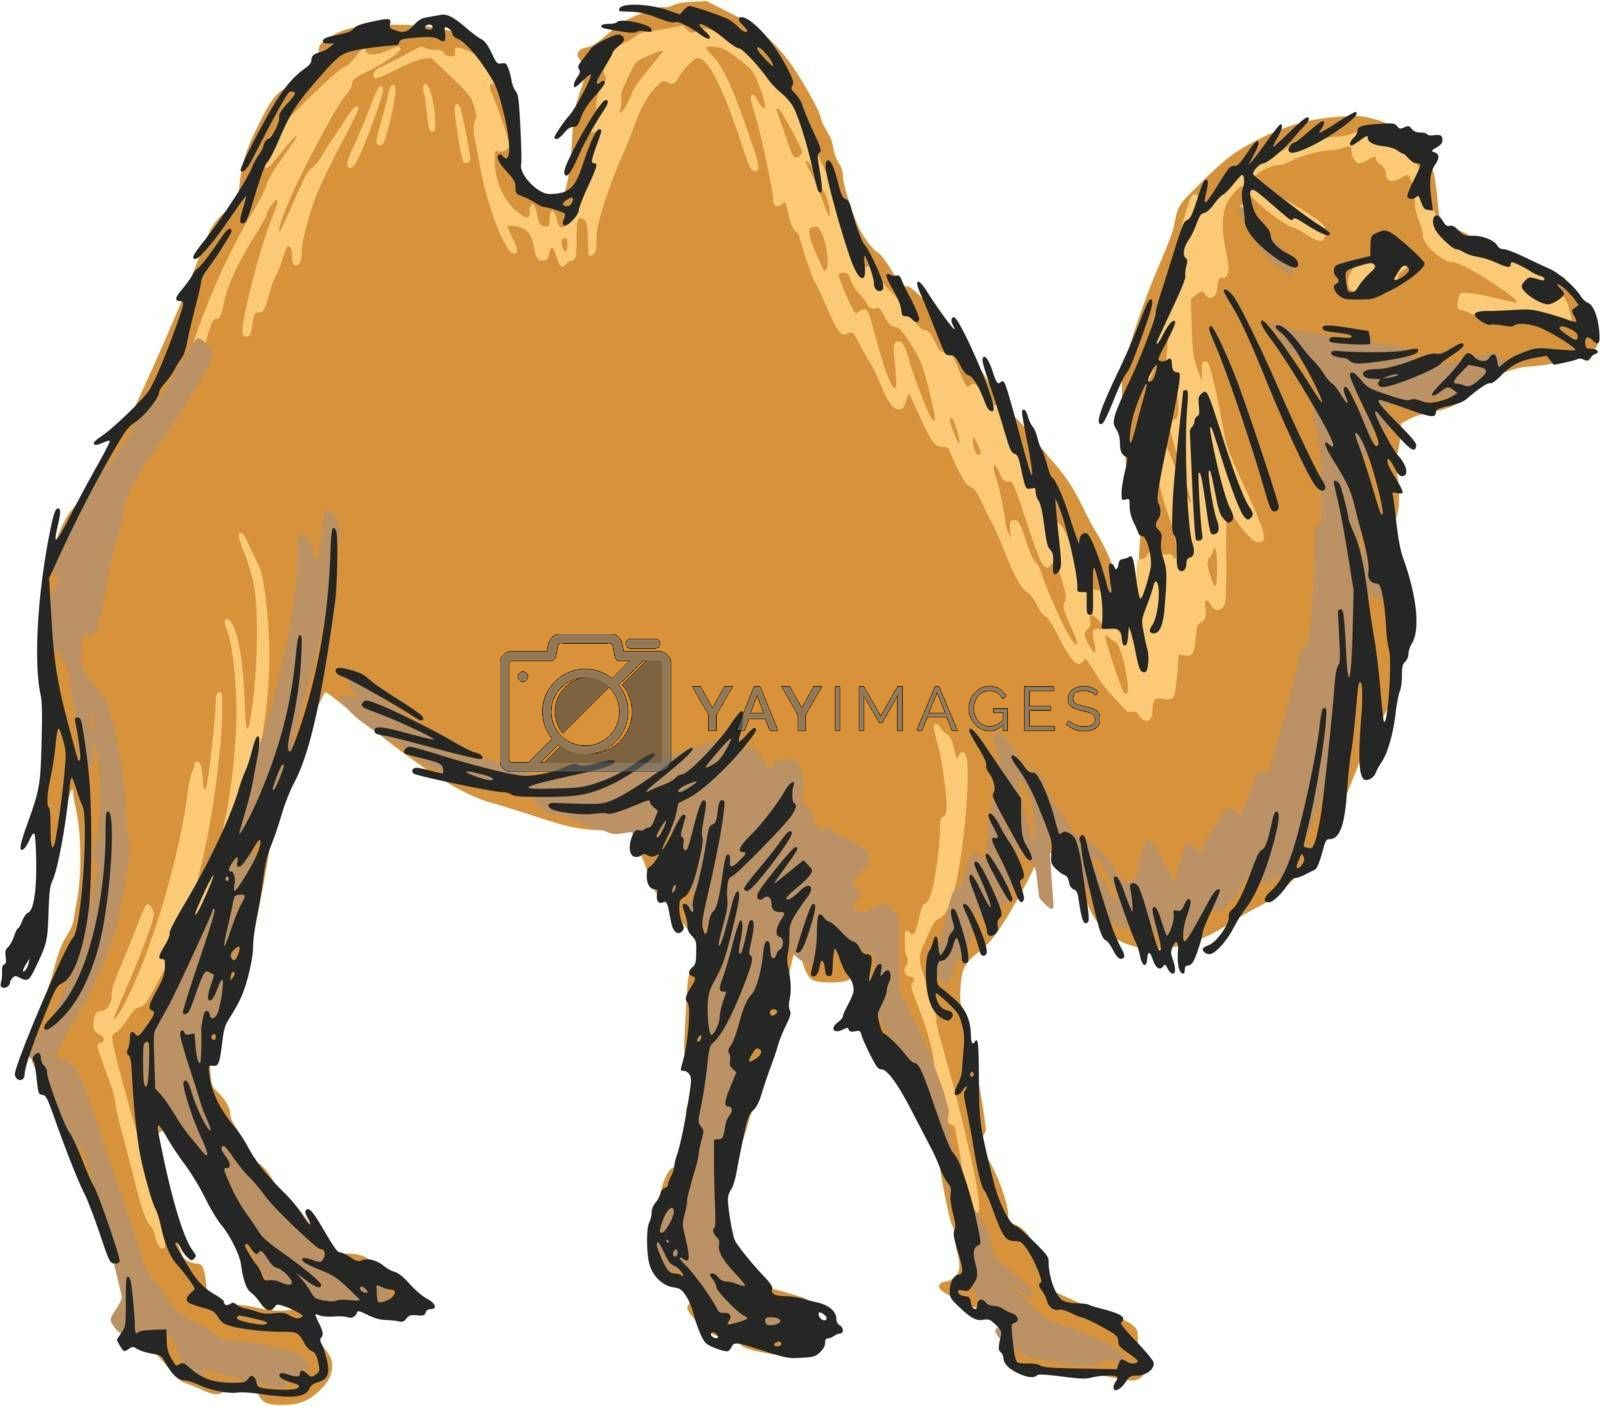 Royalty free image of camel by Perysty